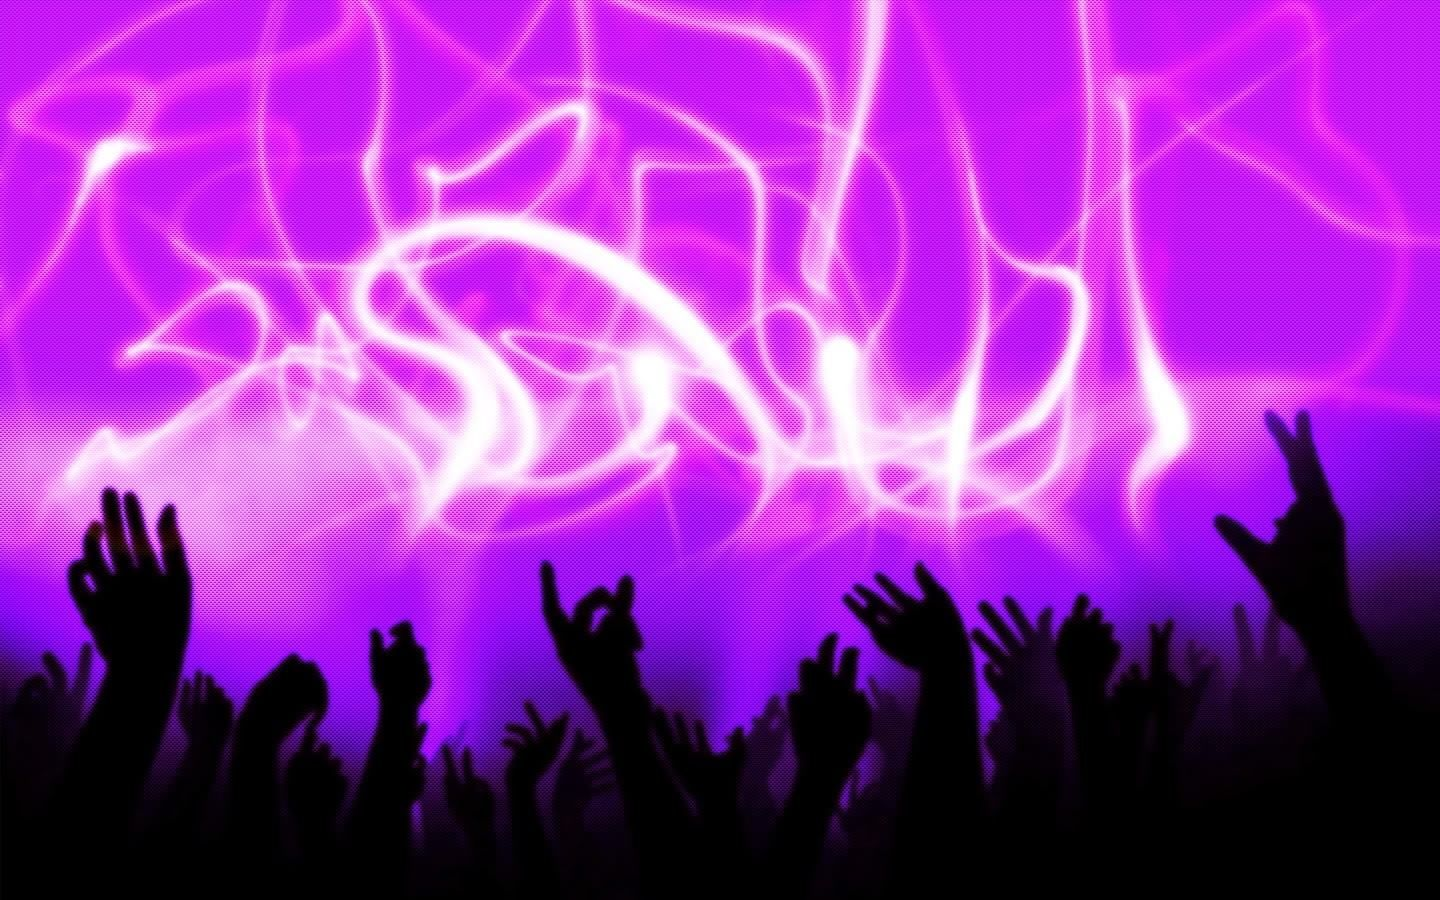 Party High Quality Hd Wallpapers Hd Quality P Mgimgi Hd Wallpapers